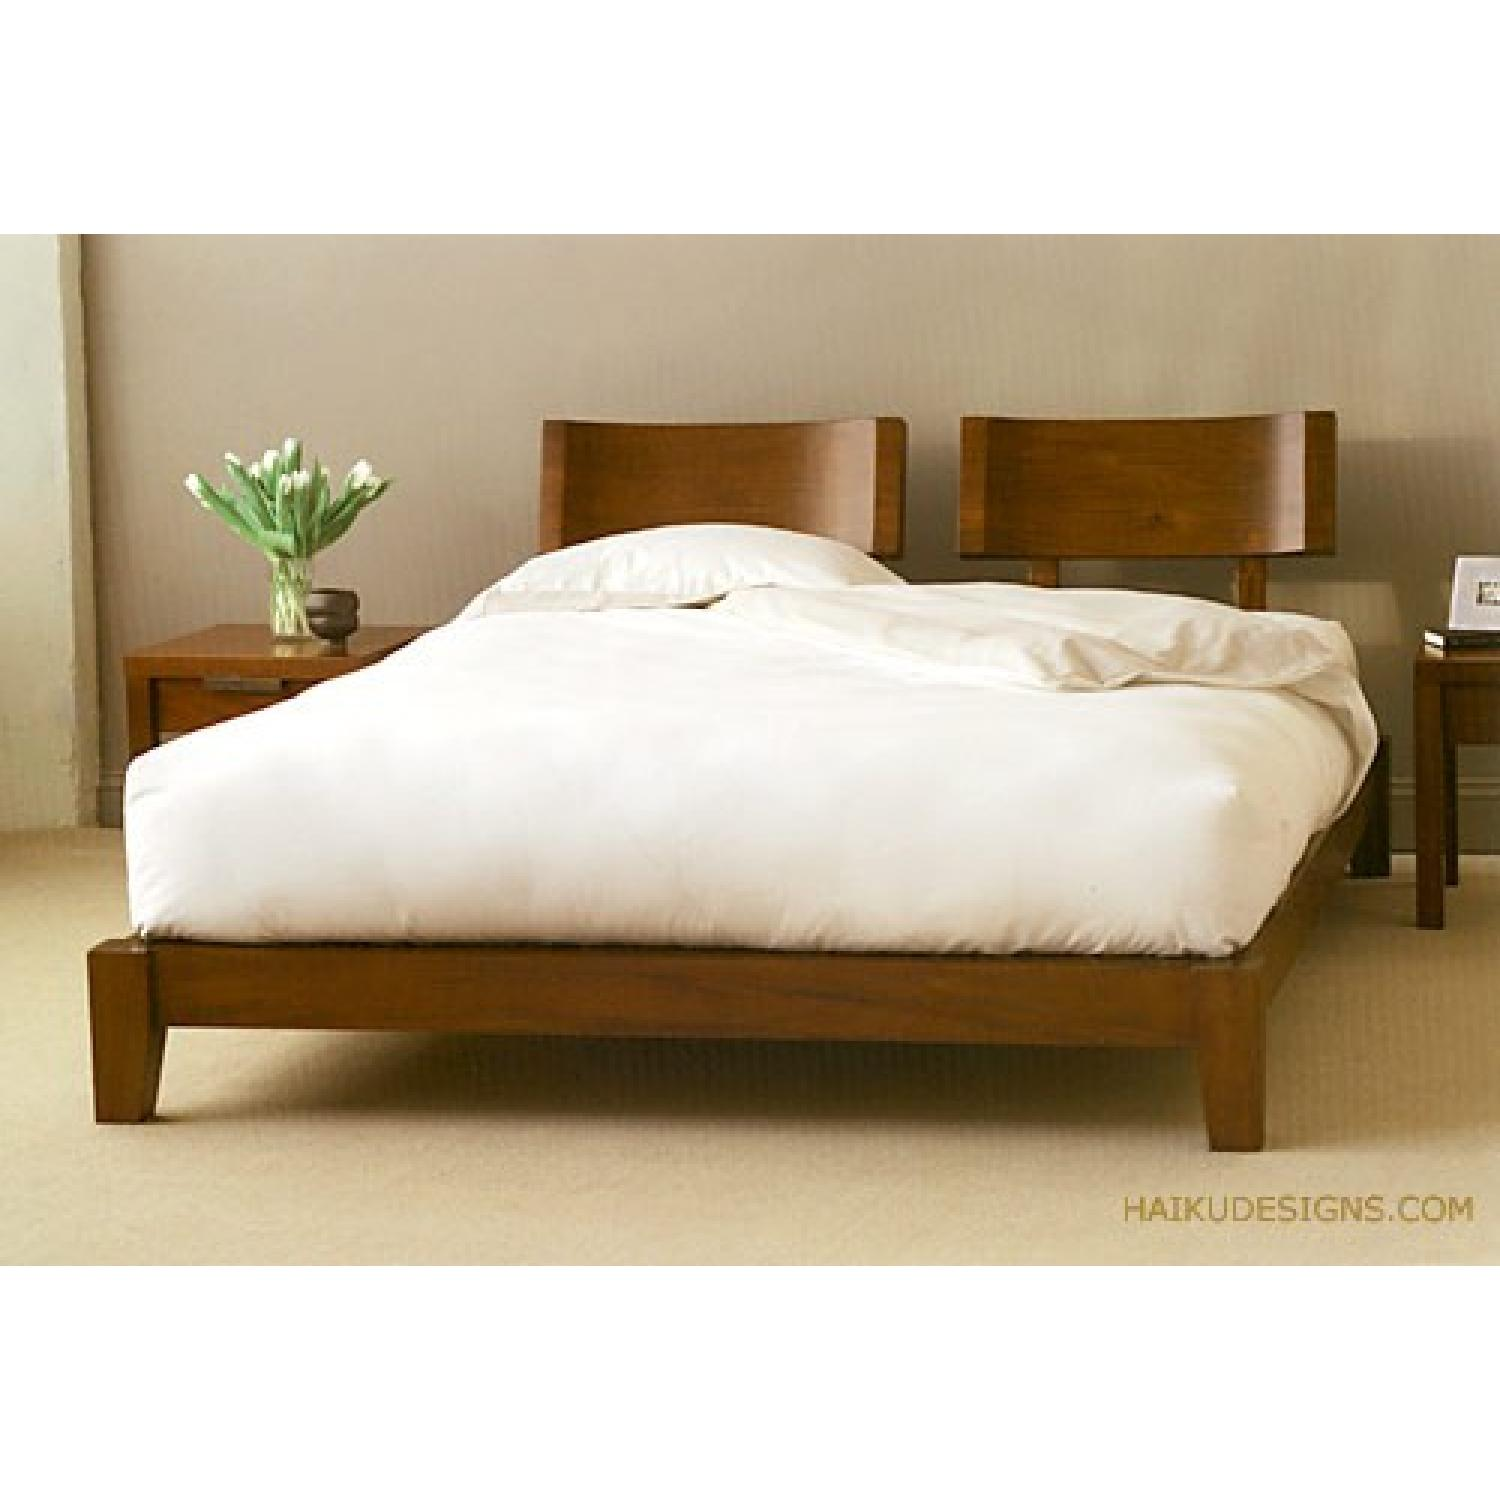 Japanese Edo Syle Queen Mahogany Bed - image-5